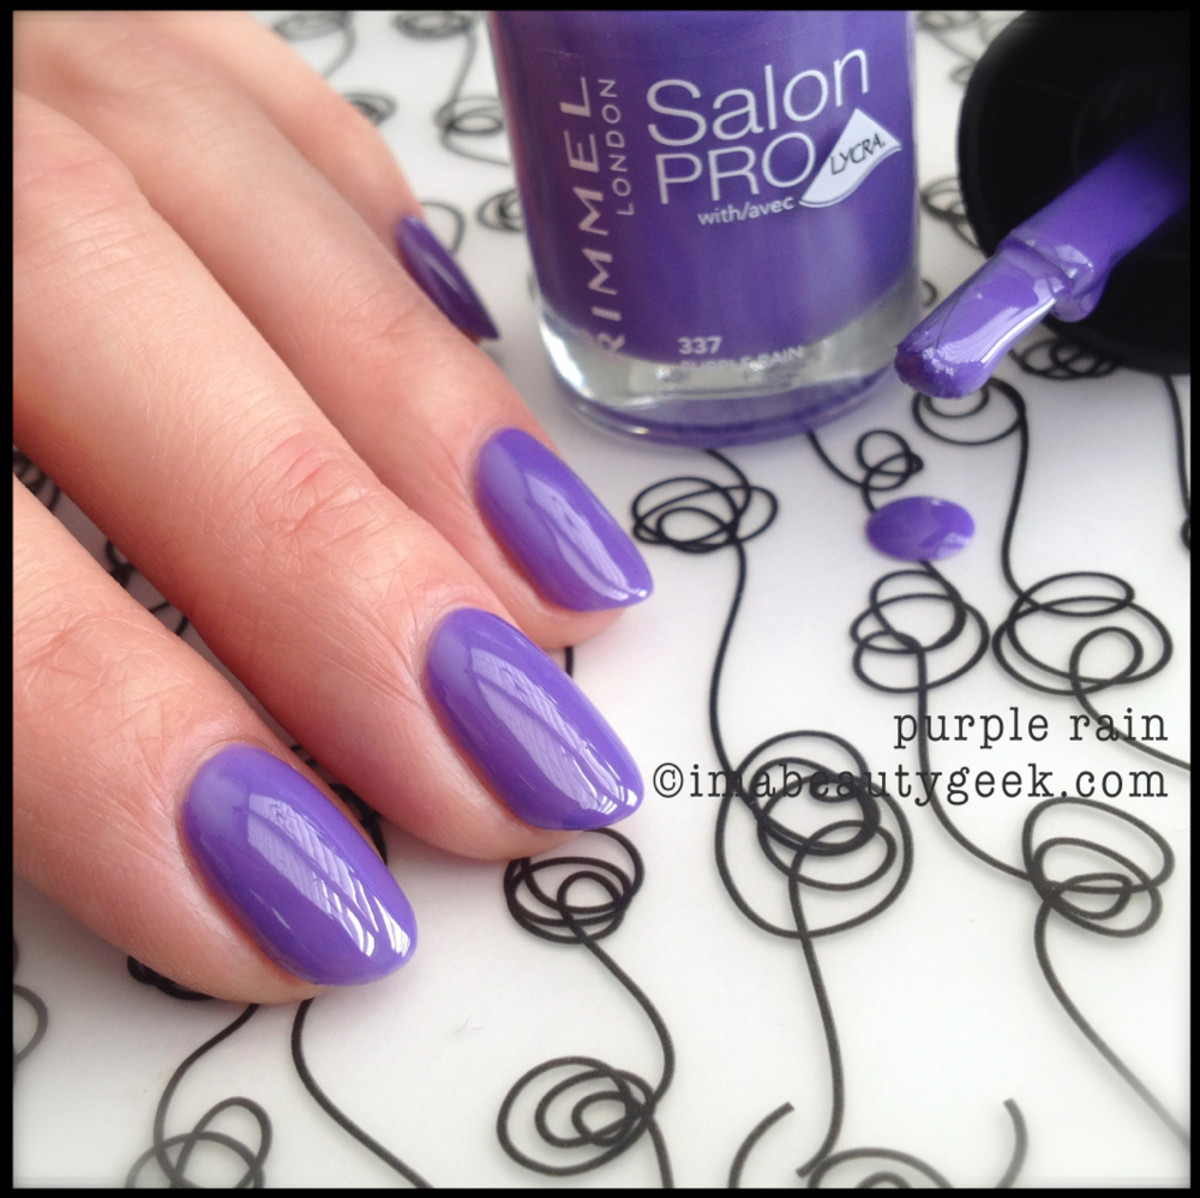 Rimmel Polish Purple Rain Spring 2014